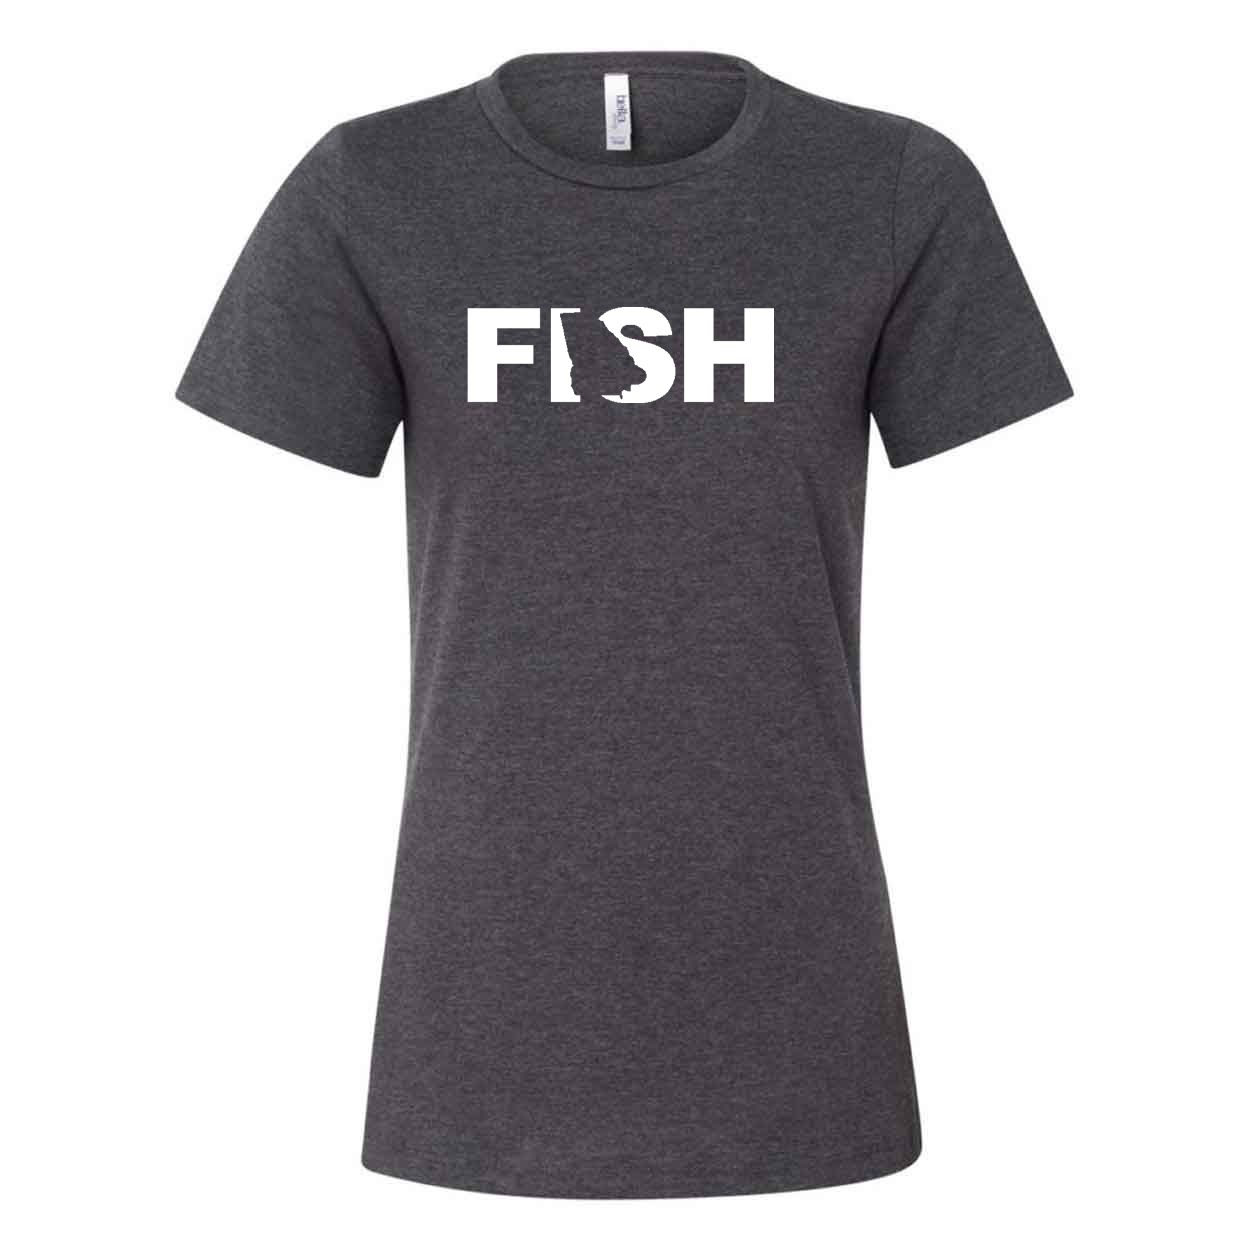 Fish Georgia Classic Women's Relaxed Jersey T-Shirt Dark Gray Heather (White Logo)